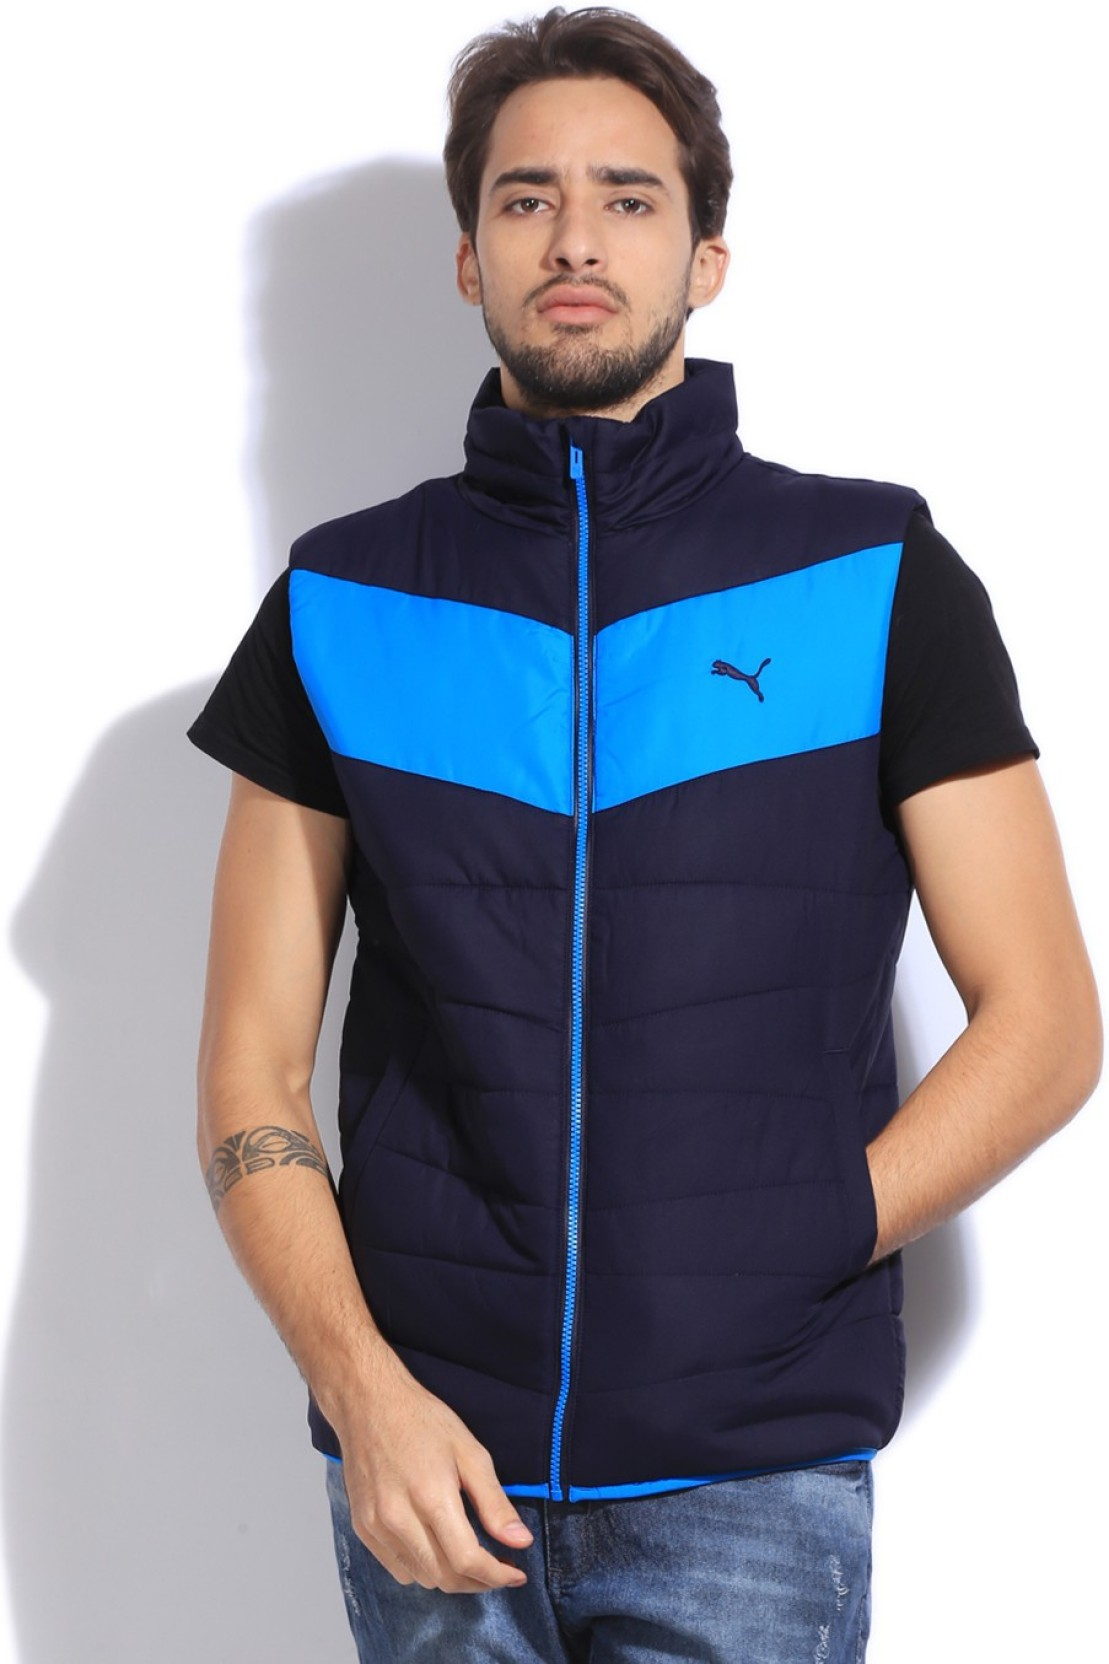 8b5b824bb6e1e Puma Sleeveless Solid Men's Quilted Jacket